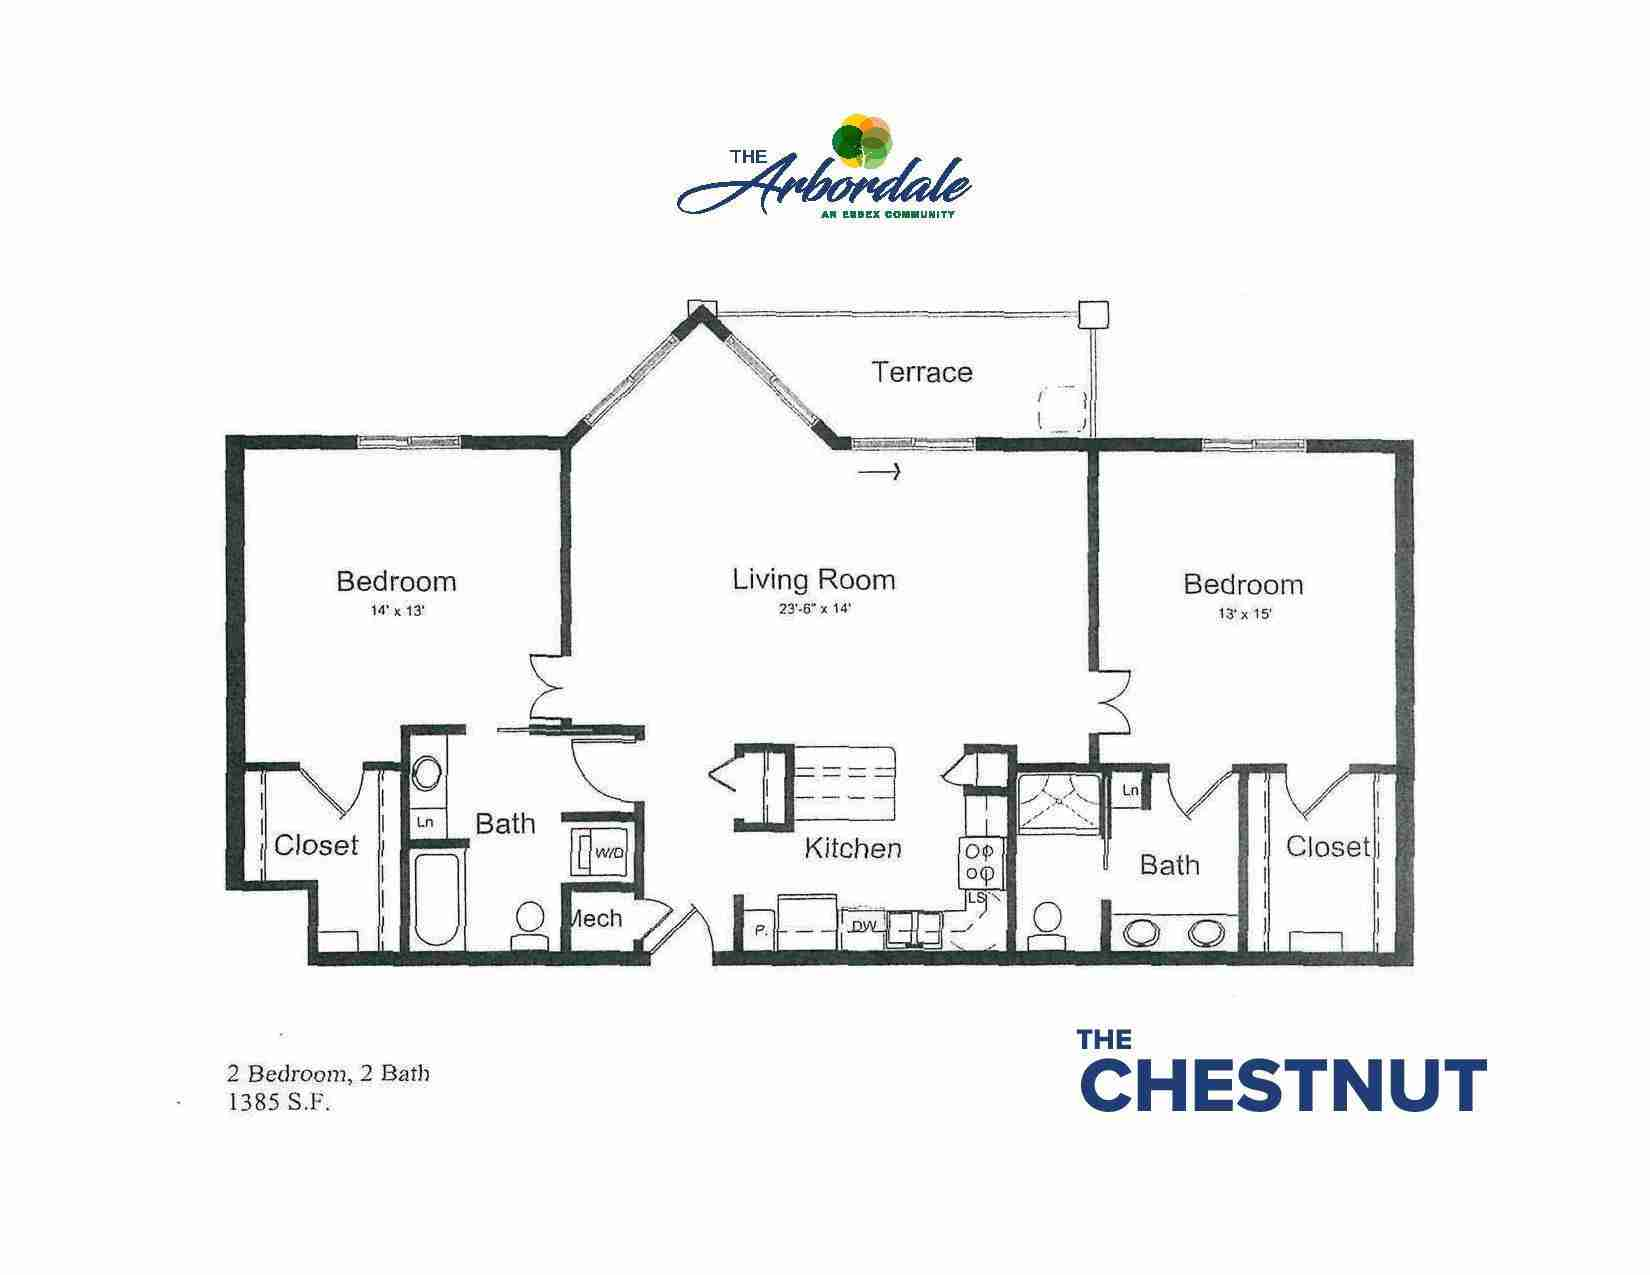 the chestnut floor plan, 2 bedroom, 2 bath, 1385 sq ft